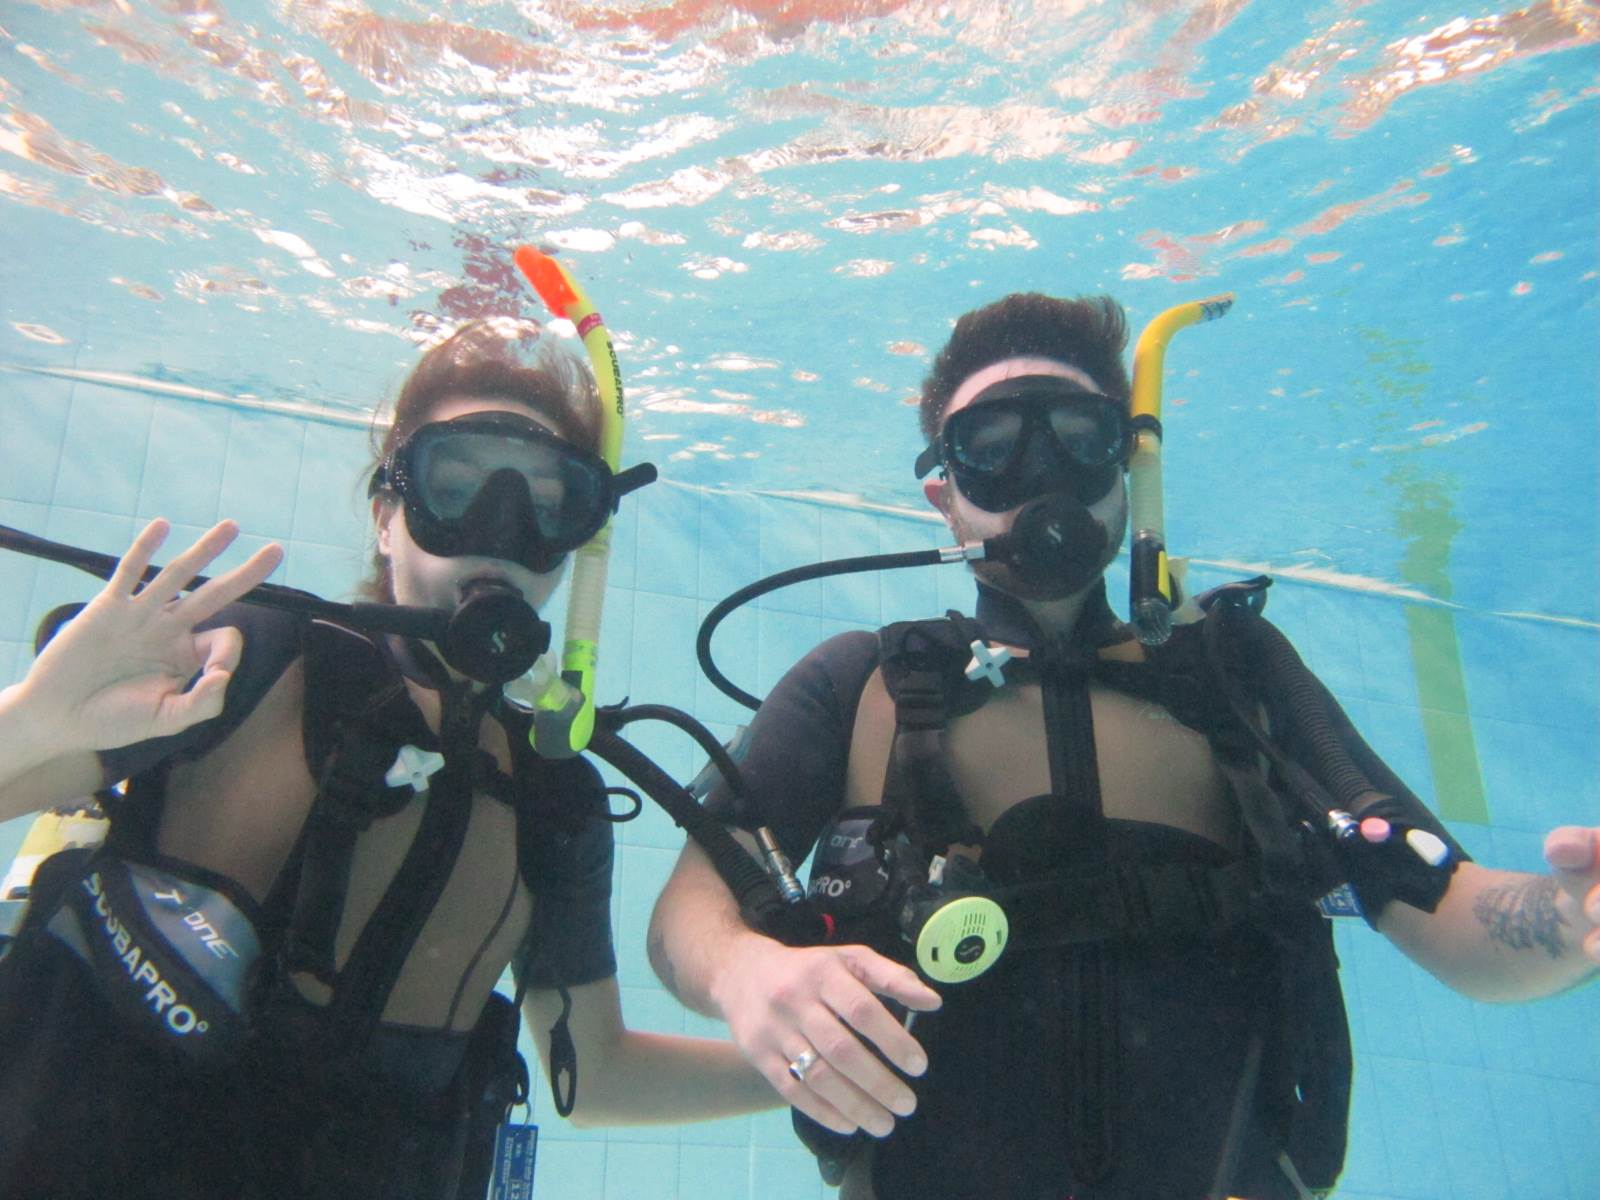 PADI Scuba diving course training in our Hertfordshire dive pool